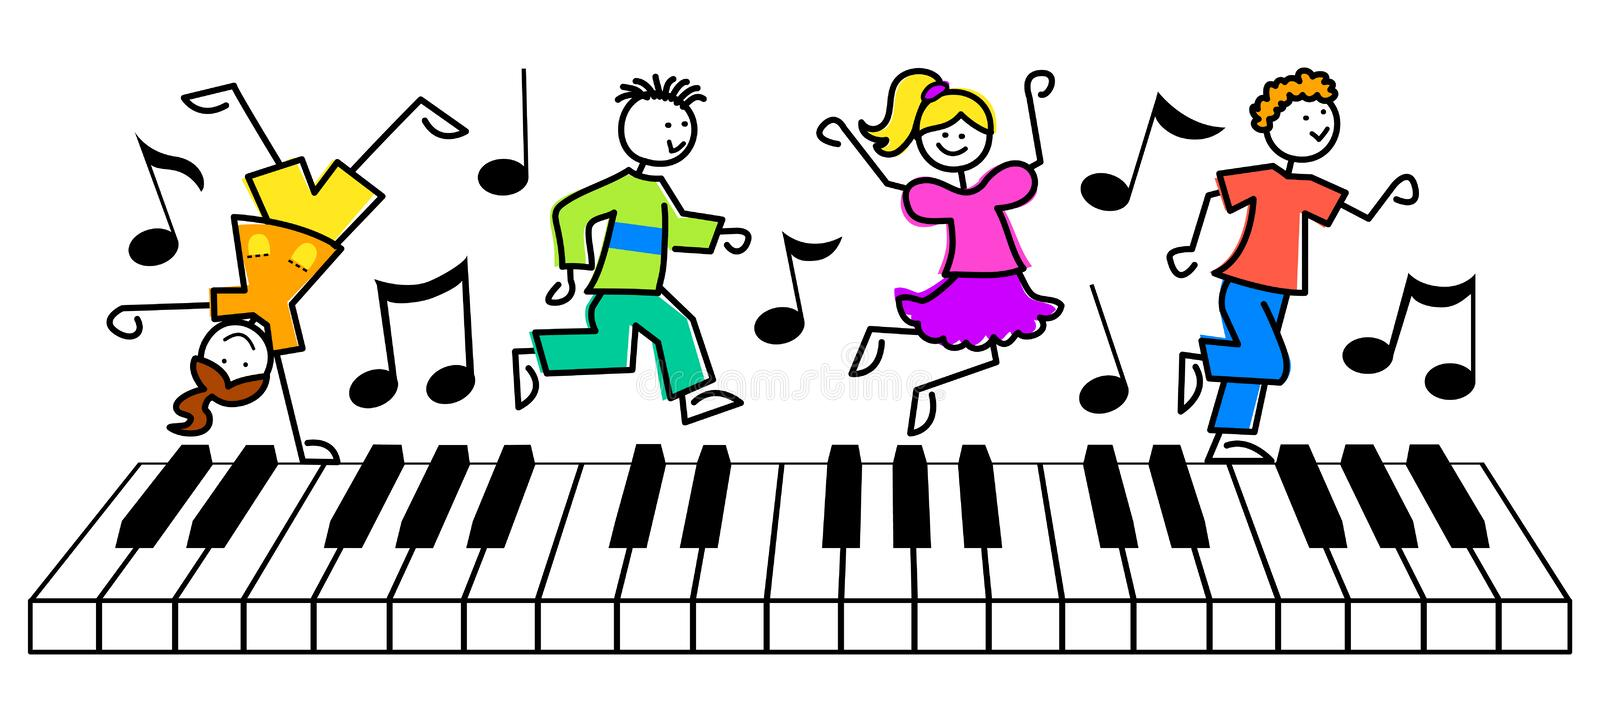 Cartoon Kids Music Keyboard/eps vector illustration